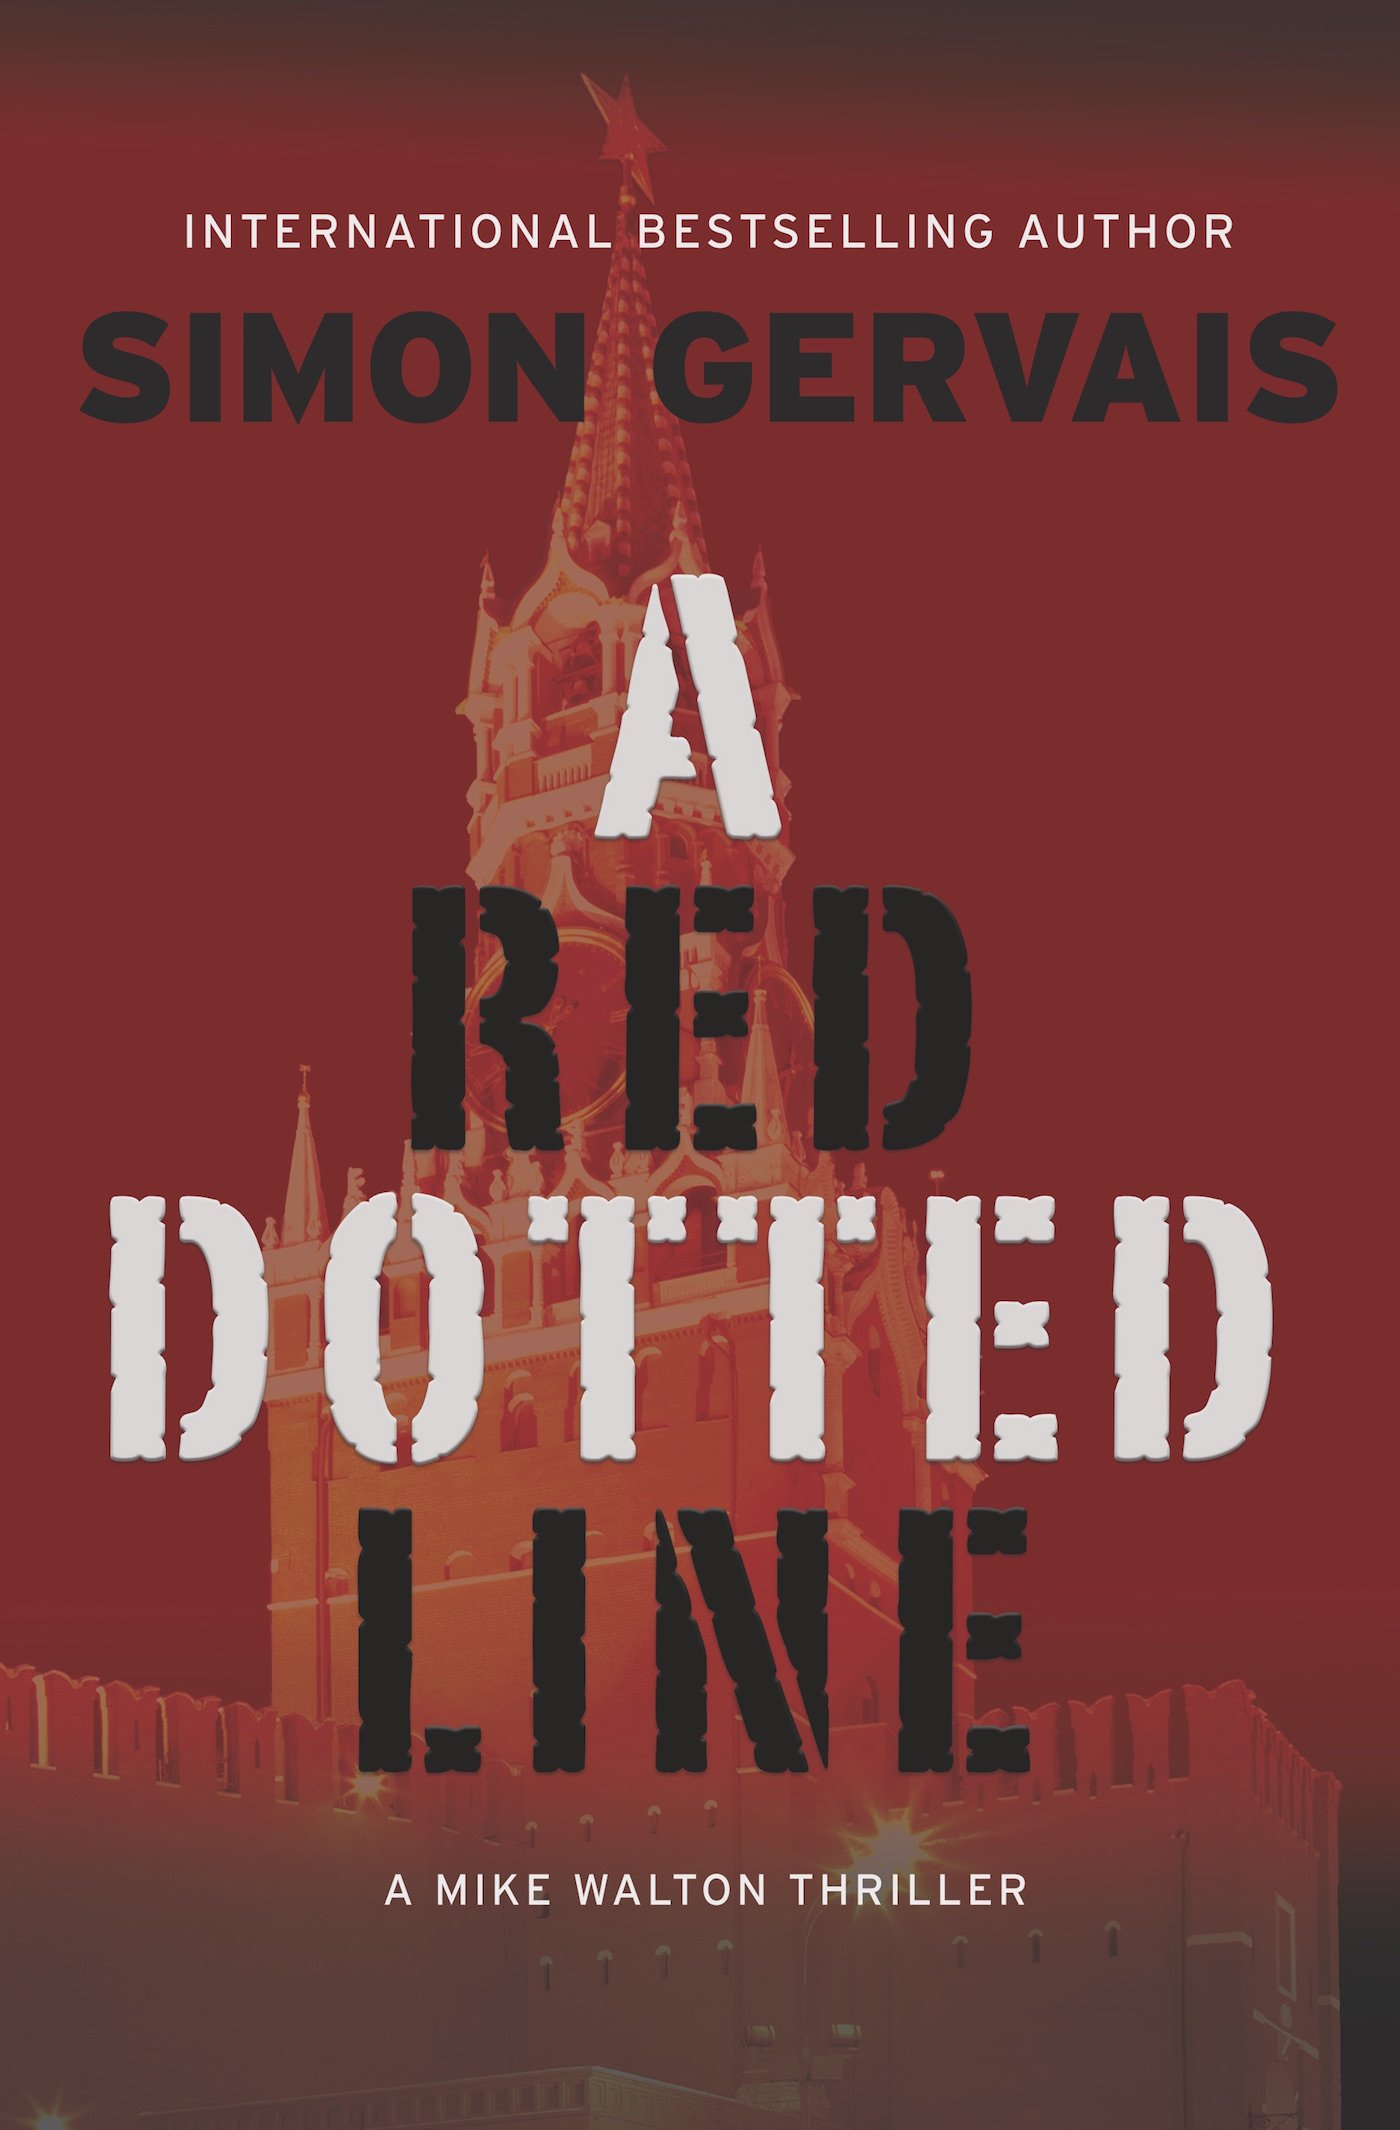 A red dotted line a mike walton thriller simon gervais a red dotted line a mike walton thriller simon gervais 9781611882353 amazon books fandeluxe Choice Image